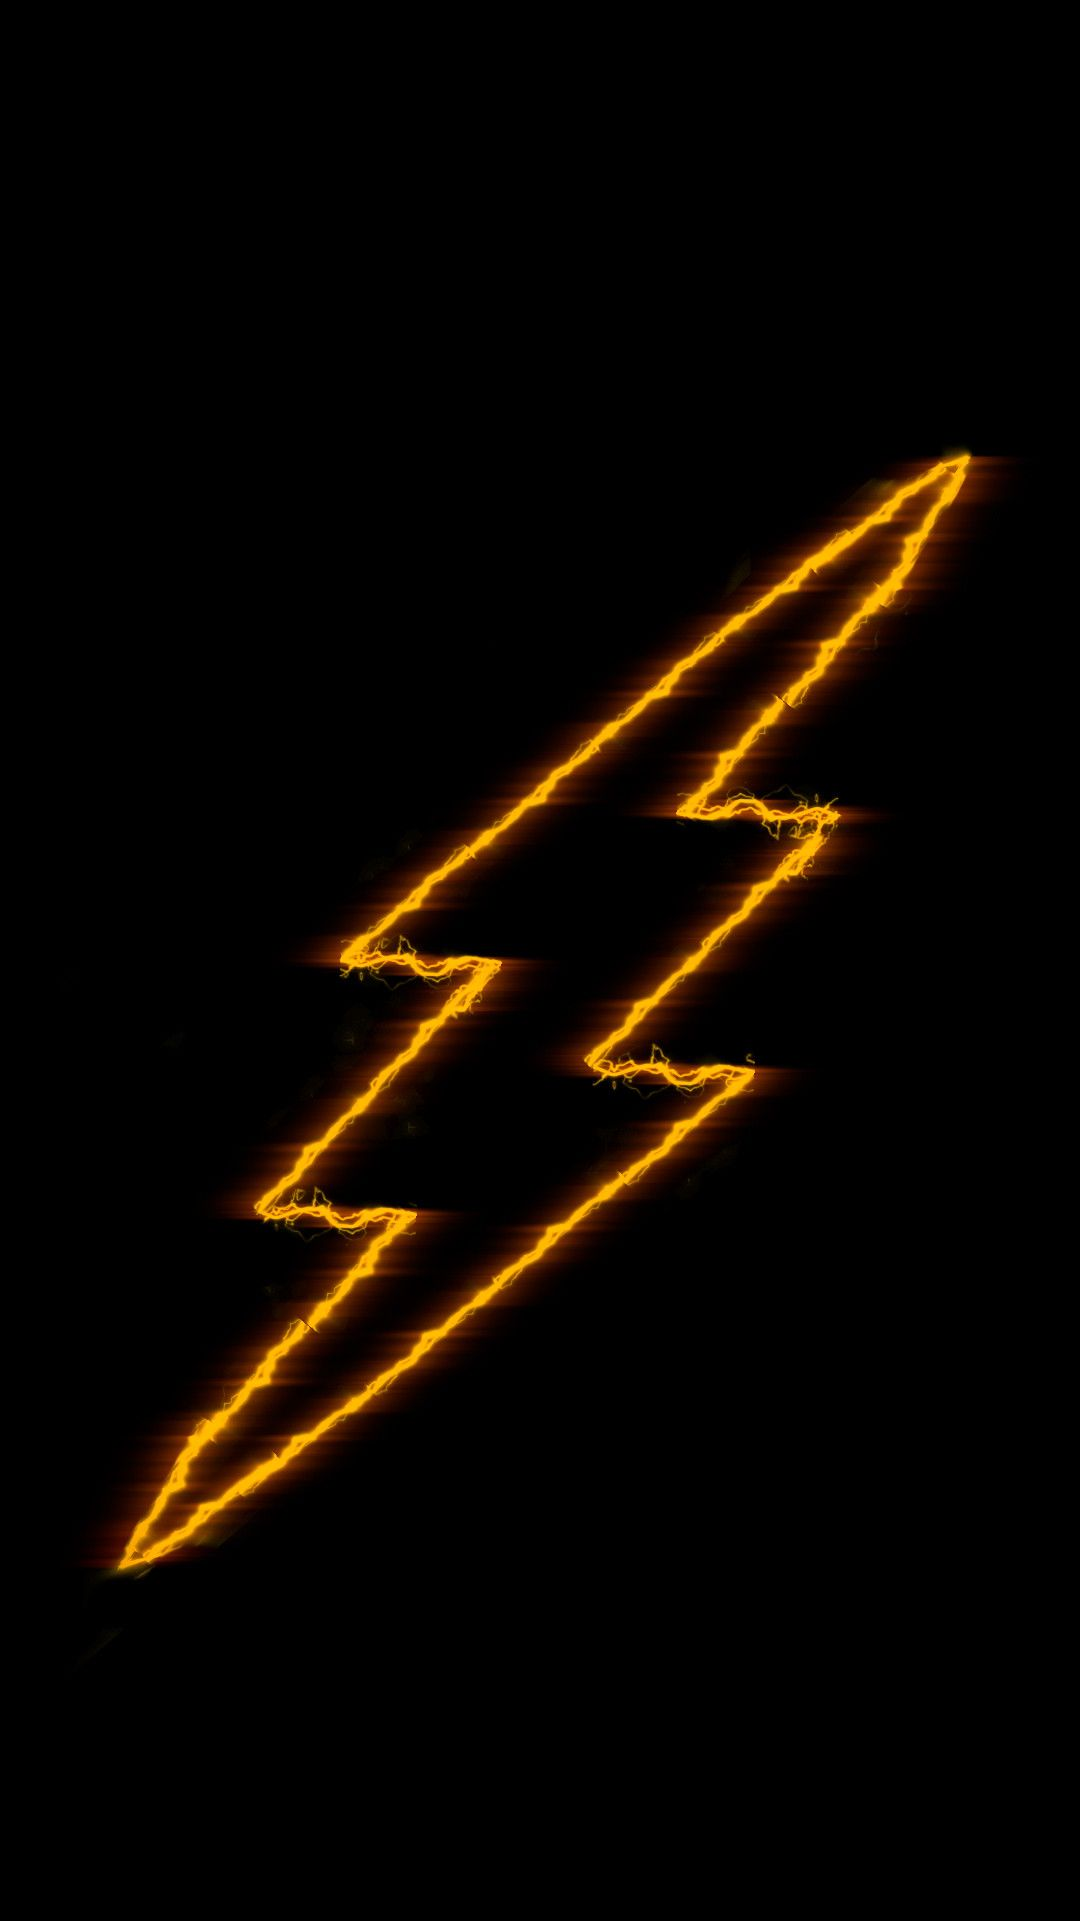 1080x1921 Arrow and Flash HD Wallpaper 40 - Get HD Wallpapers Free